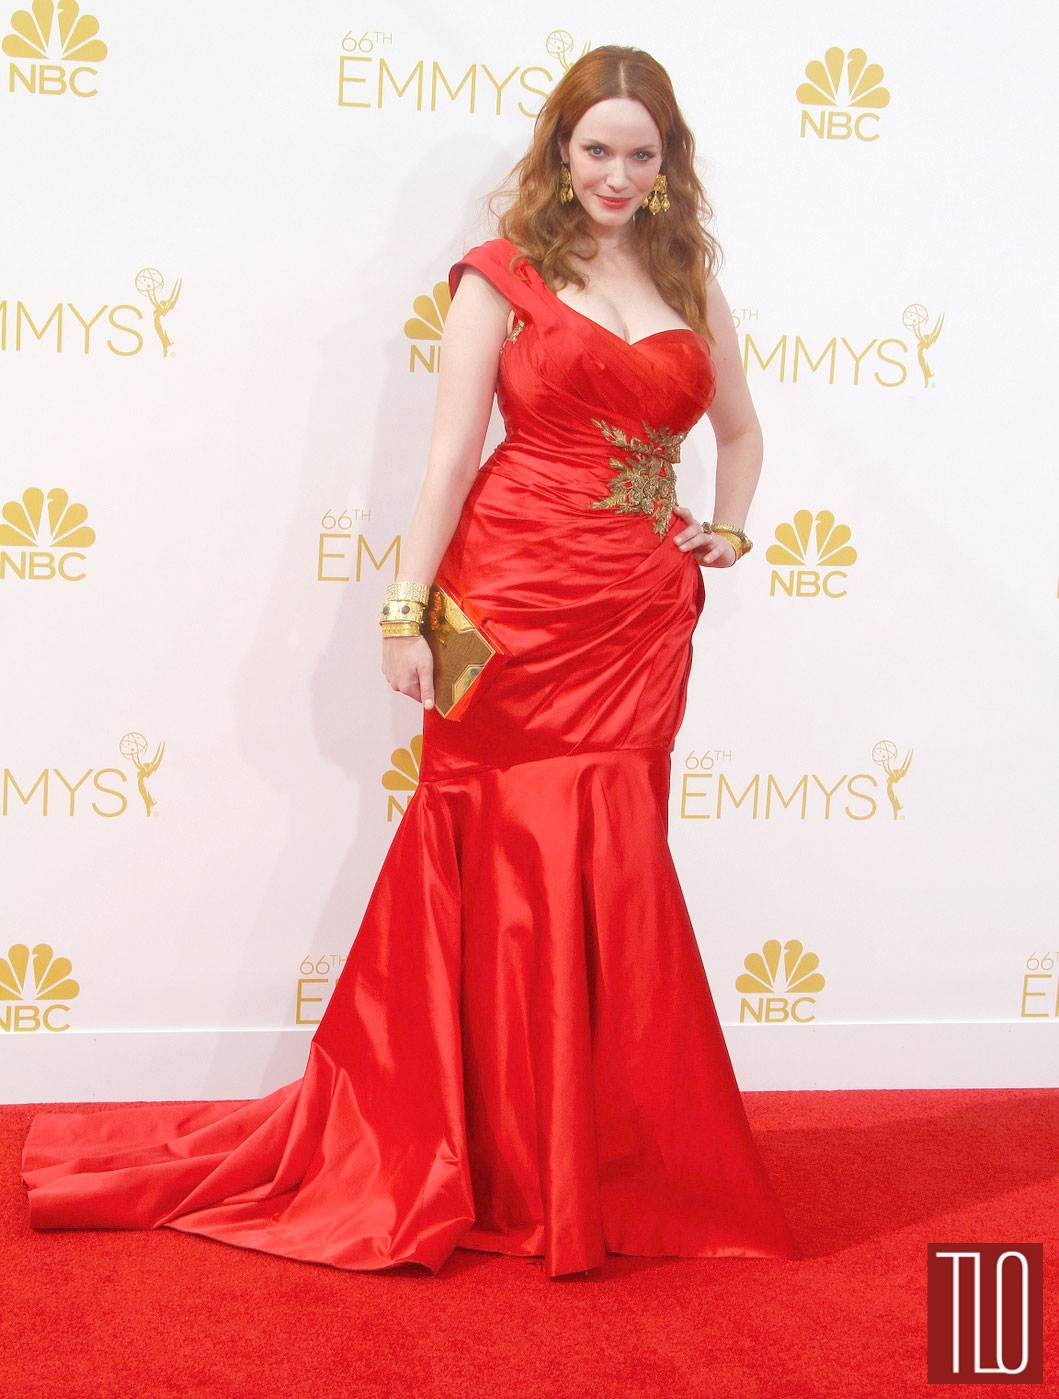 Emmys 2014 Christina Hendricks In Marchesa Tom Lorenzo